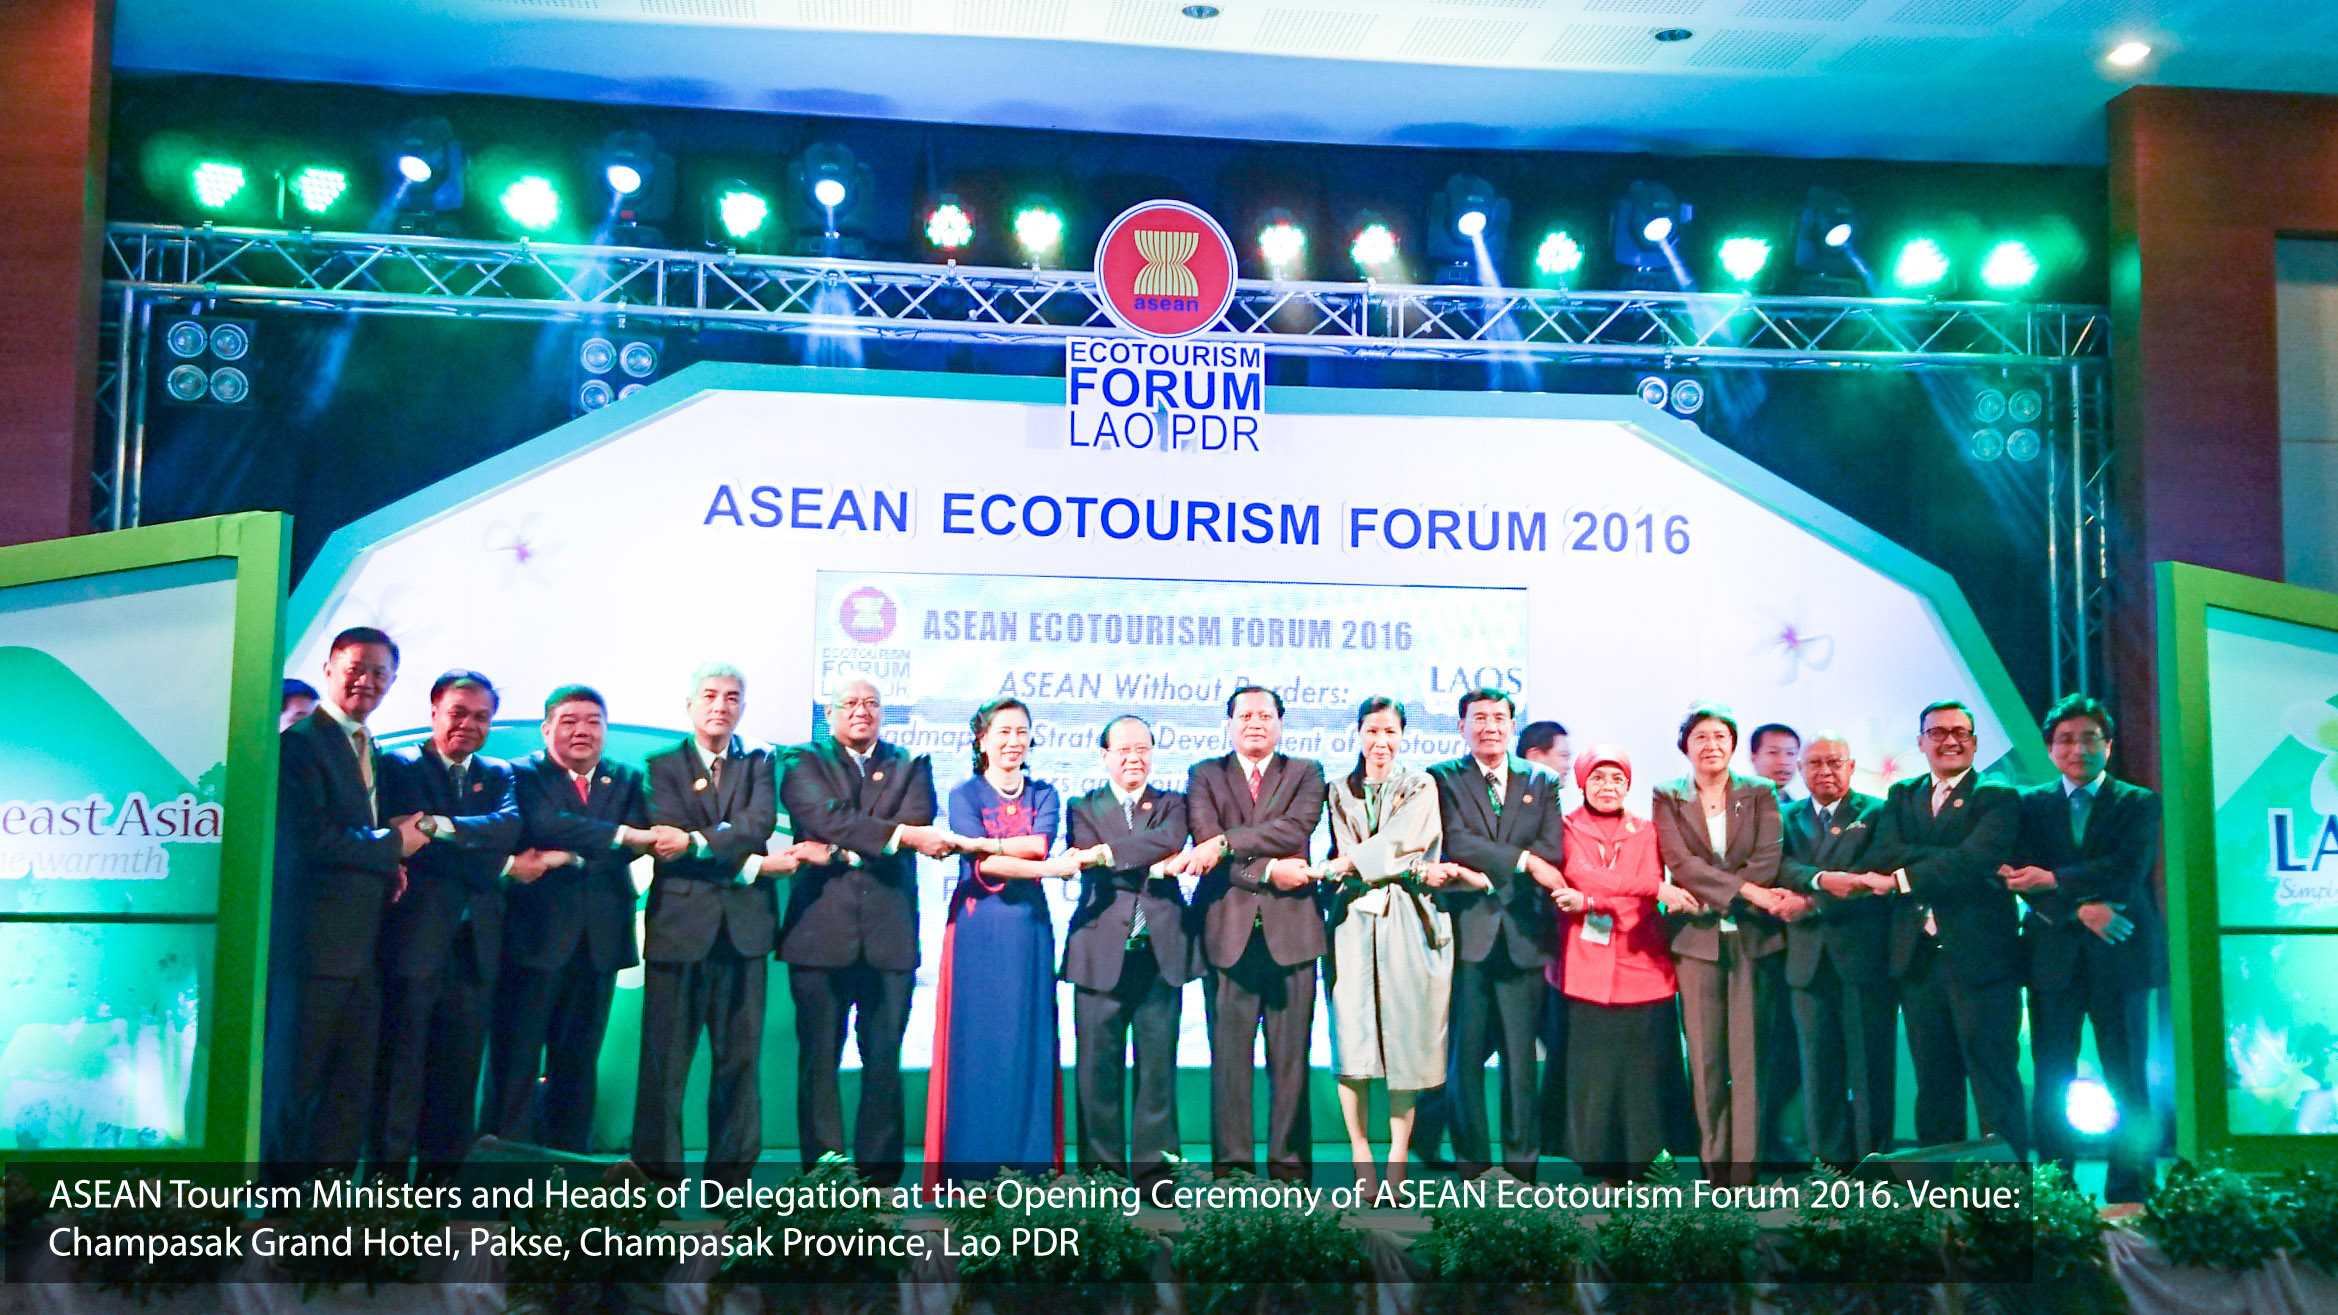 The ASEAN Tourism Ministerial Roundtable Meeting (MRT) on Ecotourism was convened on 22 June 2016 in Pakse, Champasak Province, Lao PDR, at the initiative of the Ministry of Information, Culture and Tourism of Lao PDR. The MRT held in conjunction with the ASEAN Ecotourism Forum (AEF). The Meeting was chaired by H.E. Prof. Dr. Bosengkham Vongdara, Minister of Information, Culture and Tourism, Lao PDR and H.E. Ms. Kobkarn Wattanavrangkul, Minister for Tourism and Sports, Kingdom of Thailand, serving as Co-Chair. (Photo: ASEAN's website)